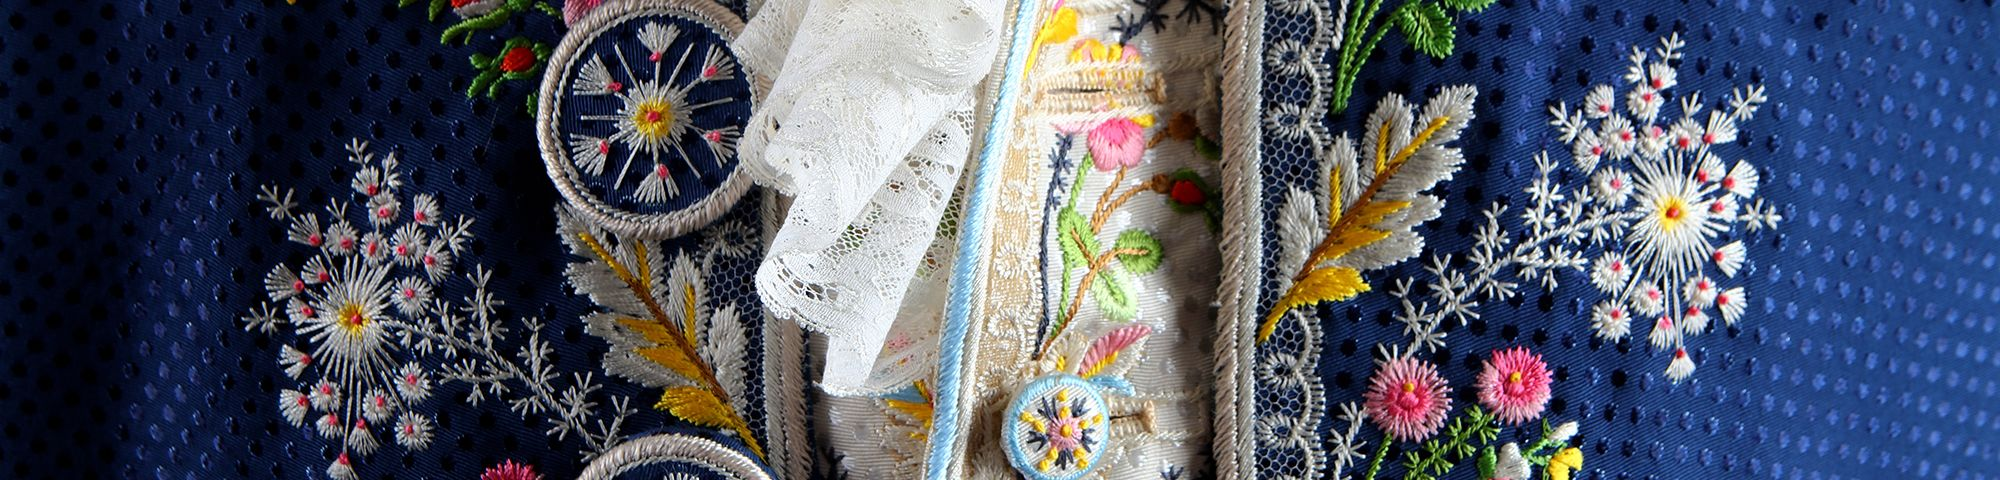 Detail image floral embroidery in pink, yellow, whilte and green on a blue silk background.